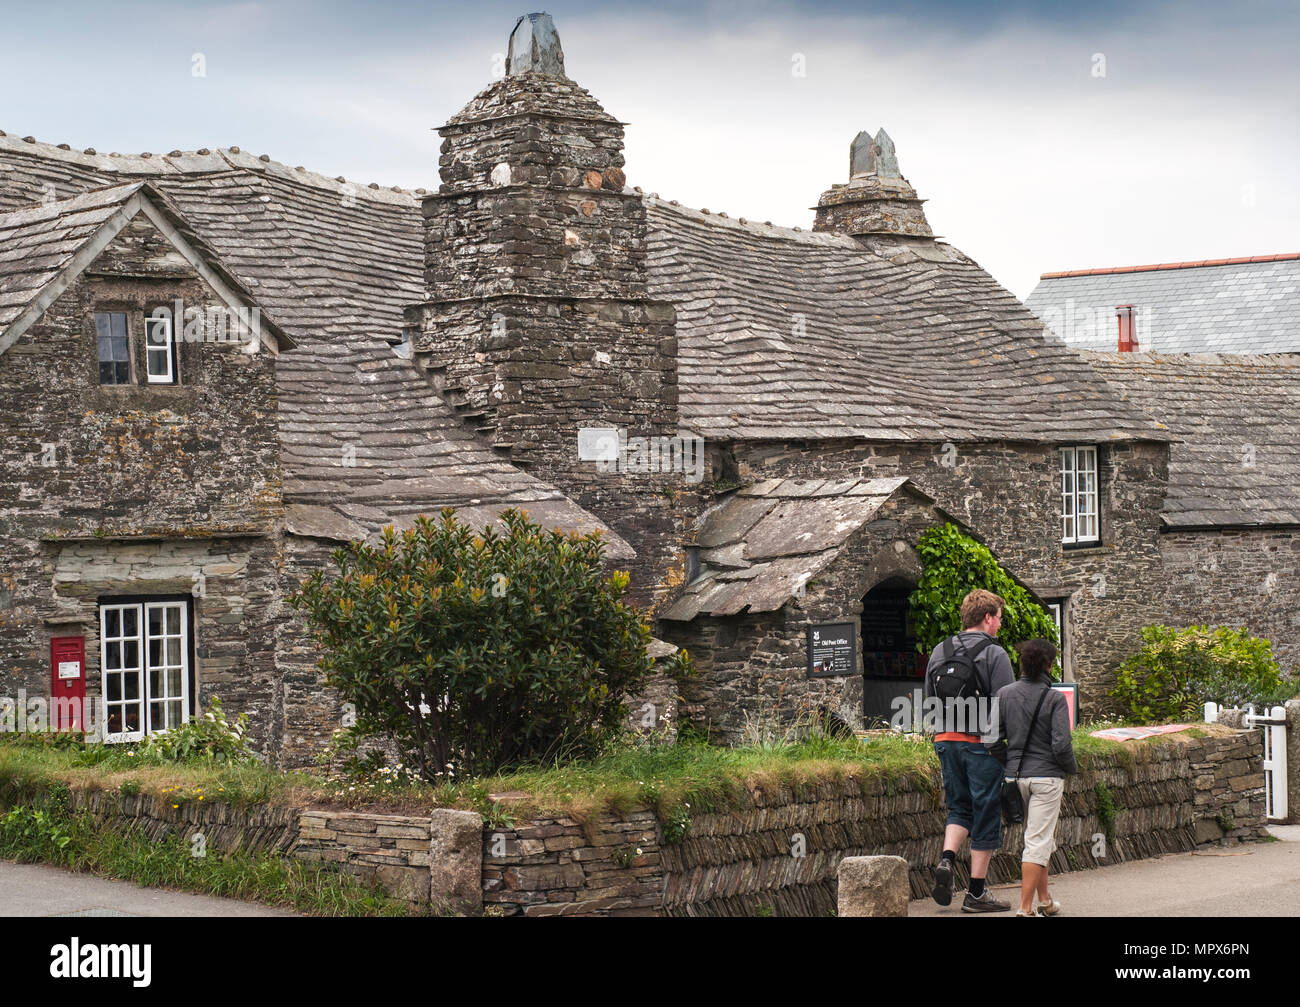 The old post office at Tintagel in Cornwall, England, UK. The 14th century stone house was built to the plan of a medieval manor house. - Stock Image